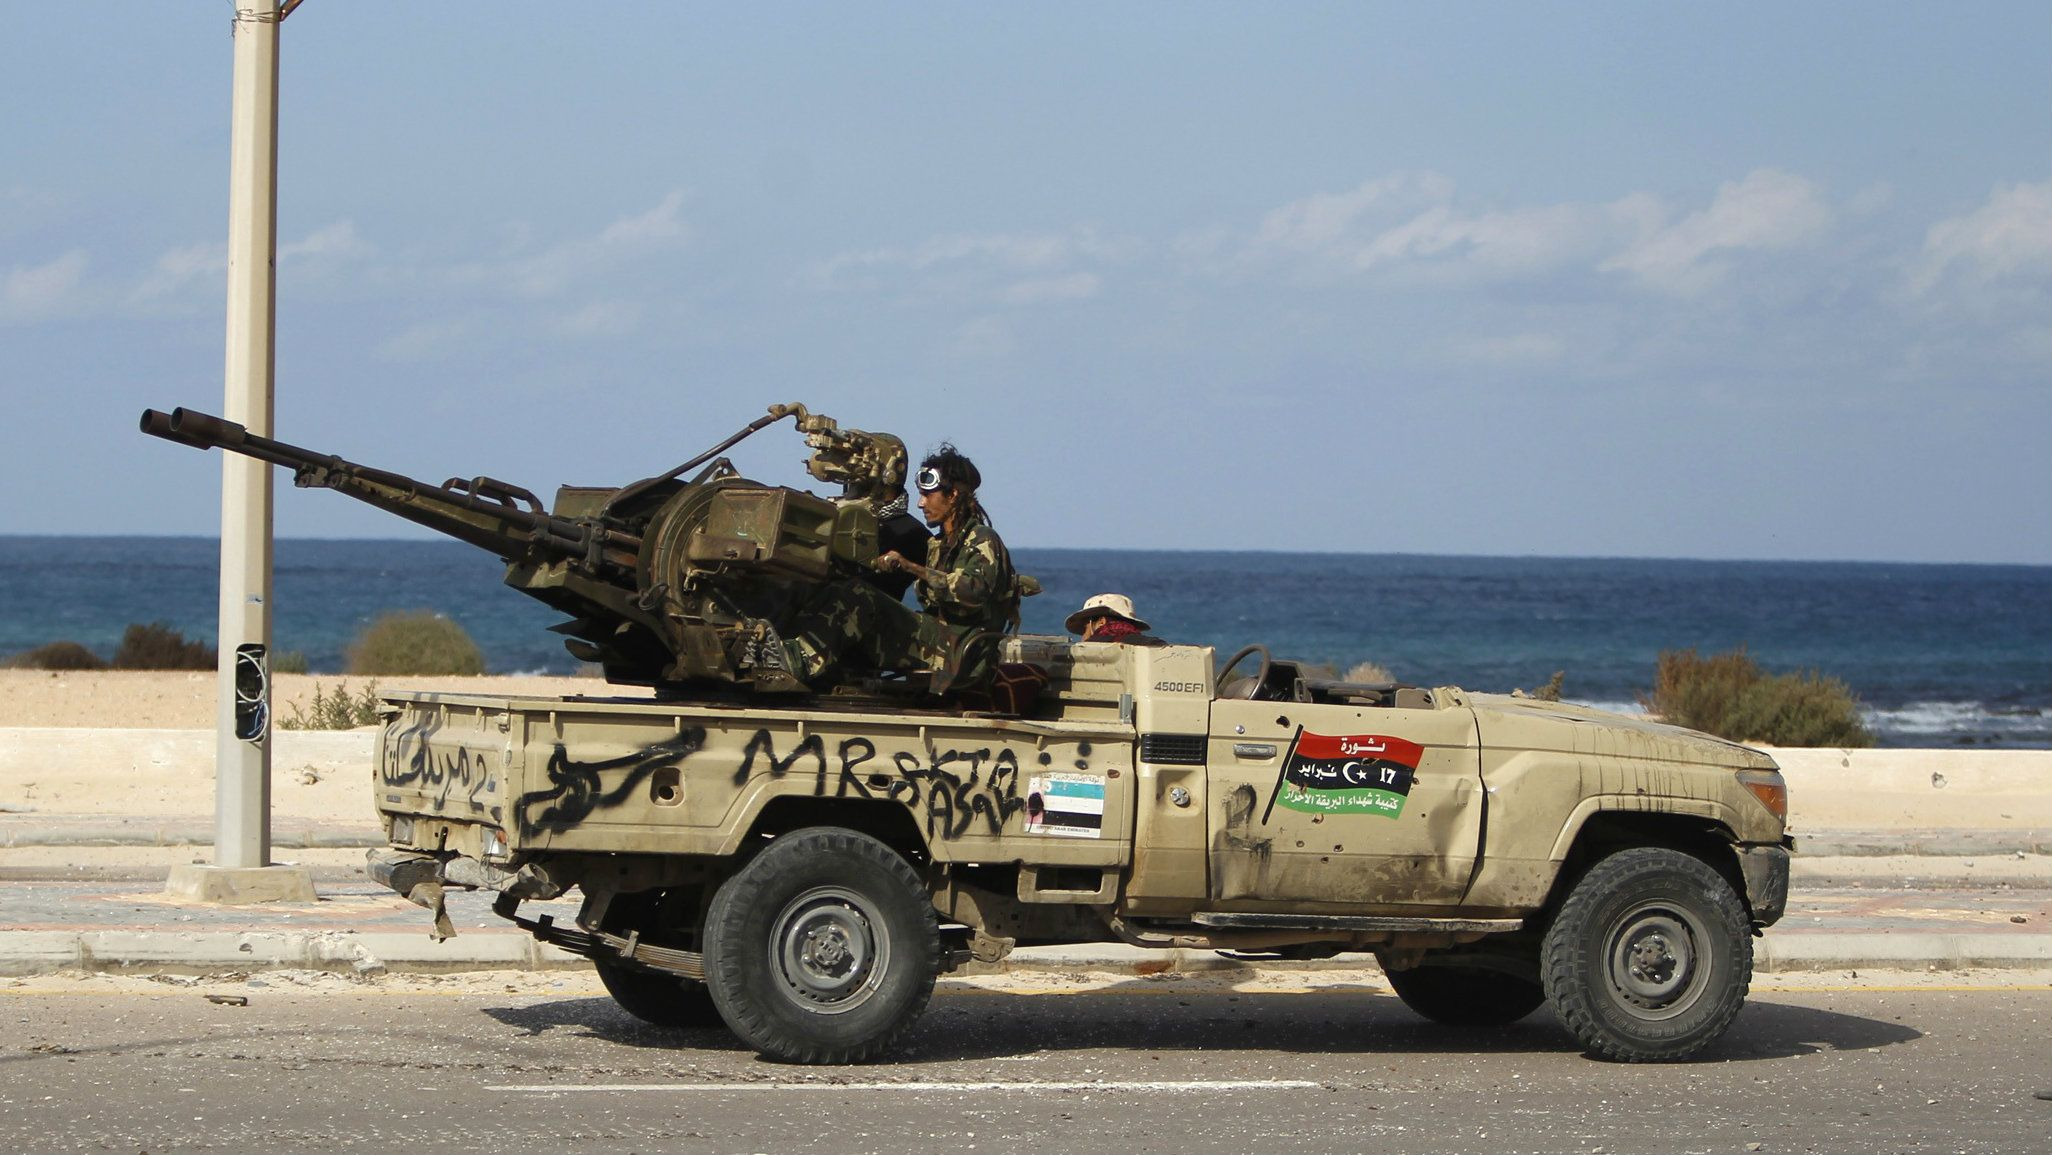 In Libya, You Can Buy Anti-Aircraft Gun on Facebook - MPC JOURNAL